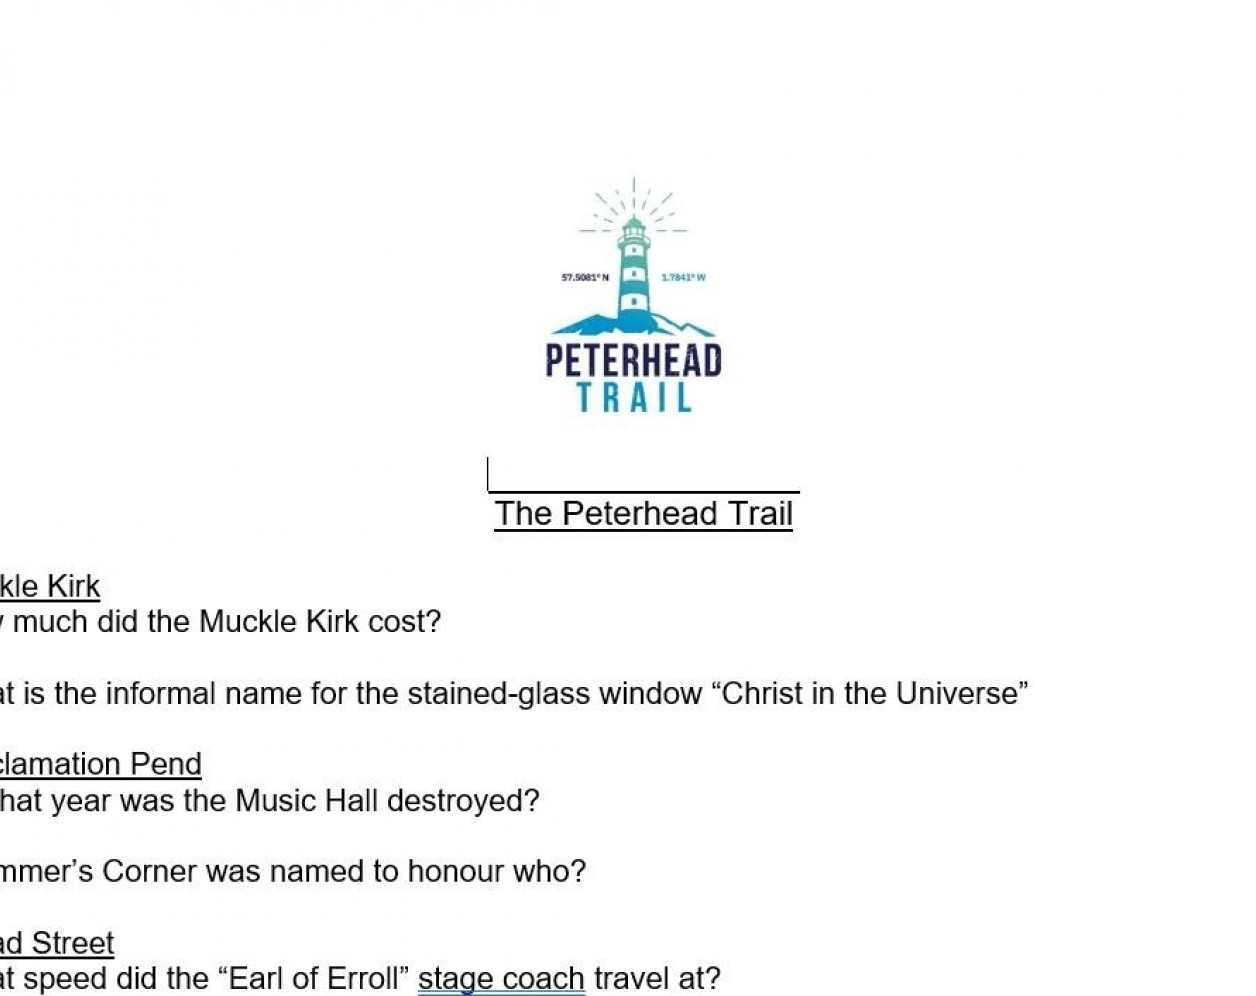 Downloadable Peterhead Trail Quiz